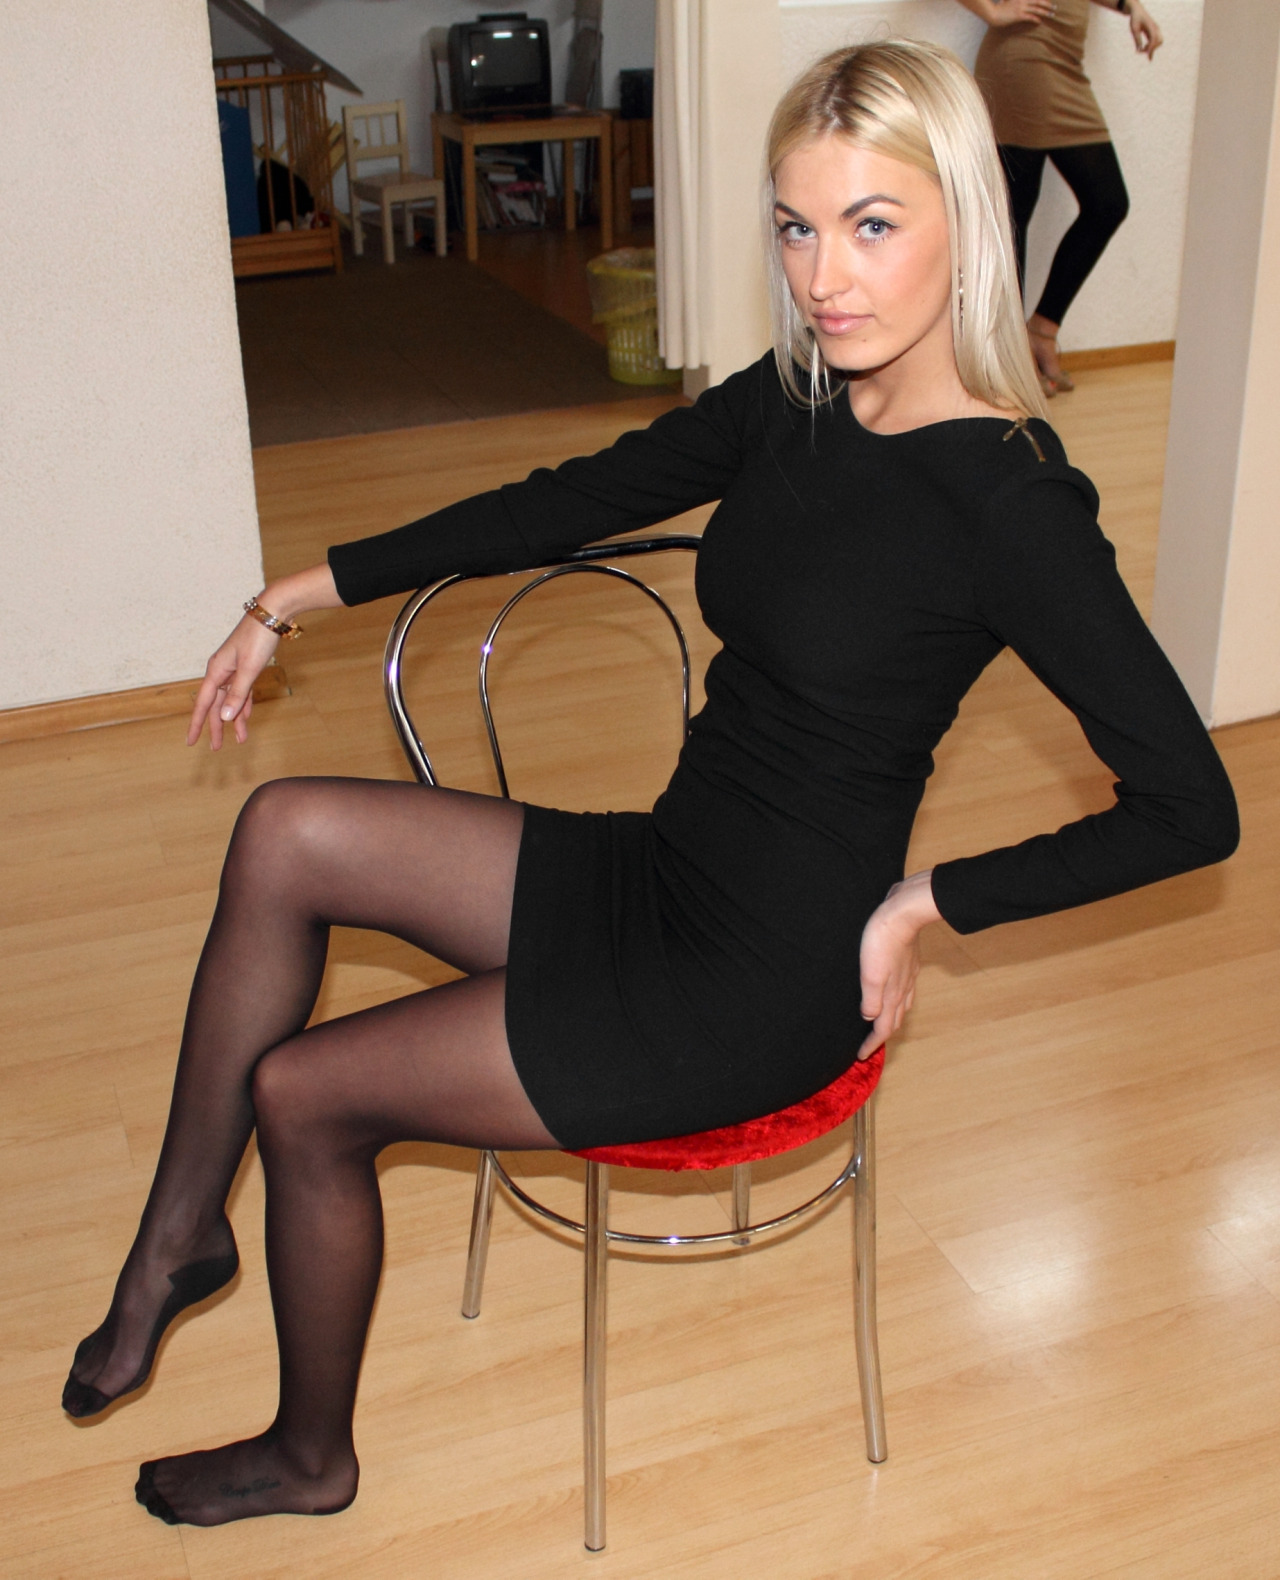 Blonde, barefoot and with black dress (II)